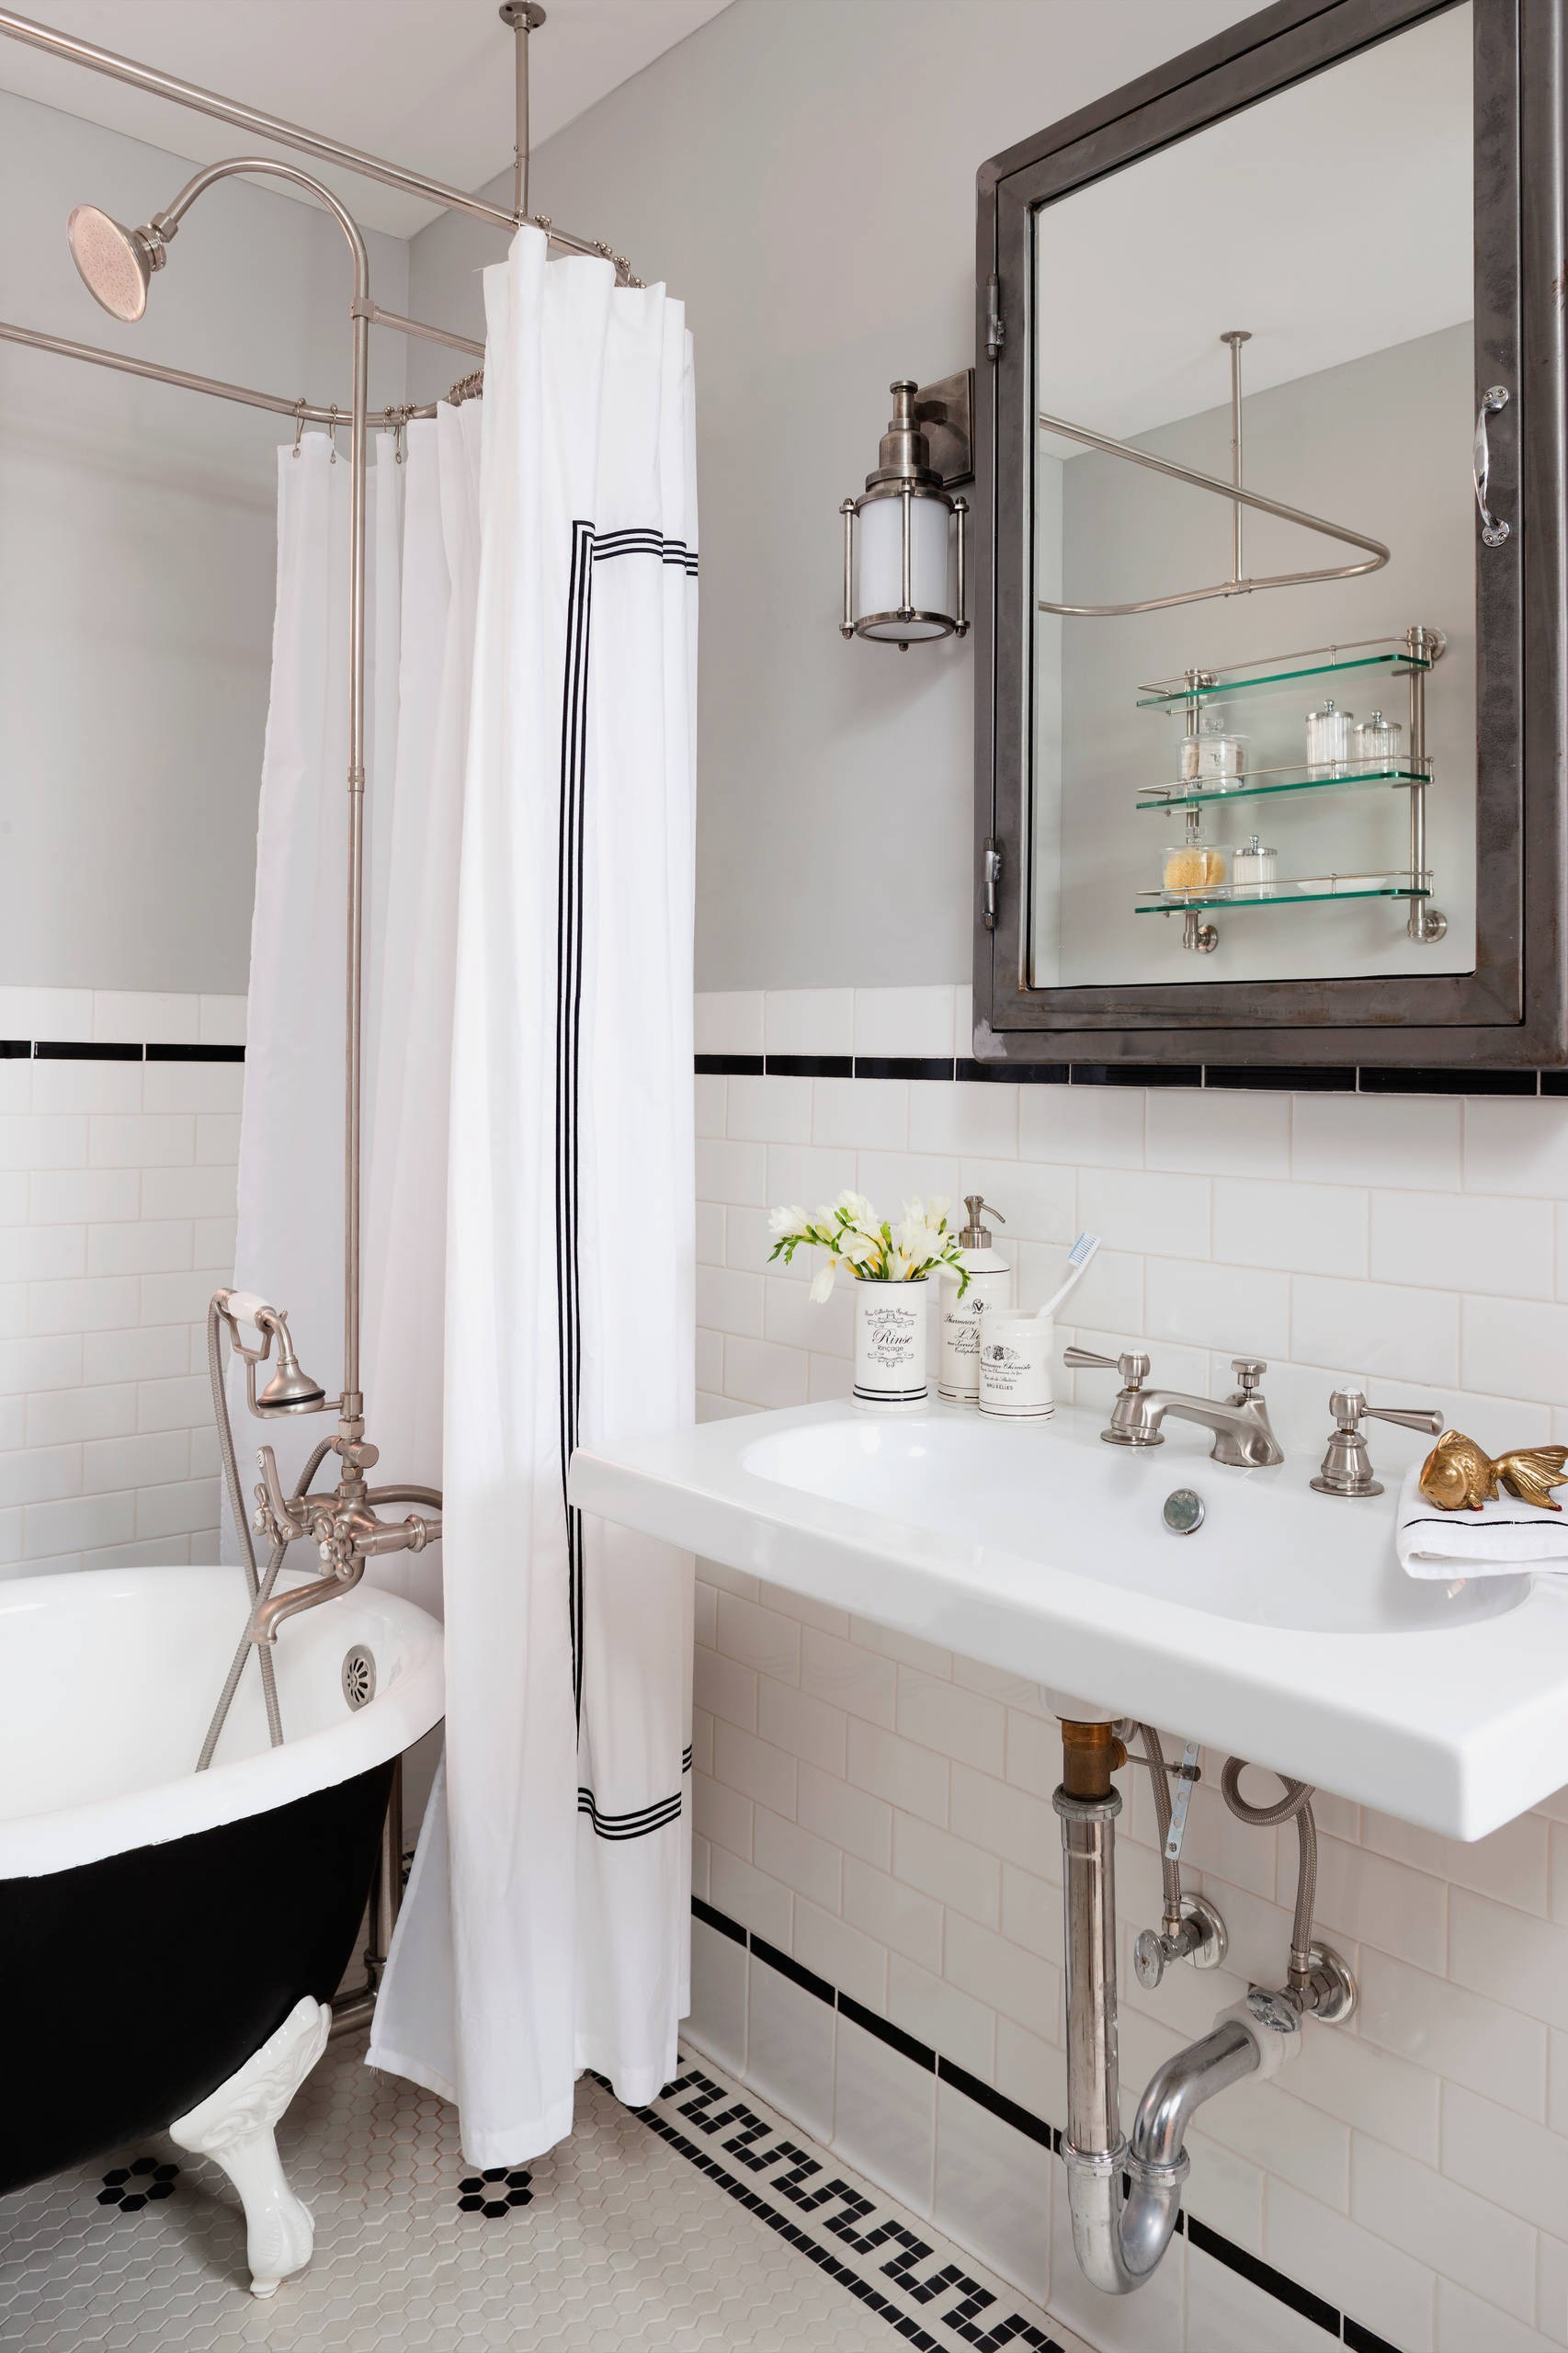 Finest Industrial Bathroom Decor Inspiration - Bathroom Design Ideas ...